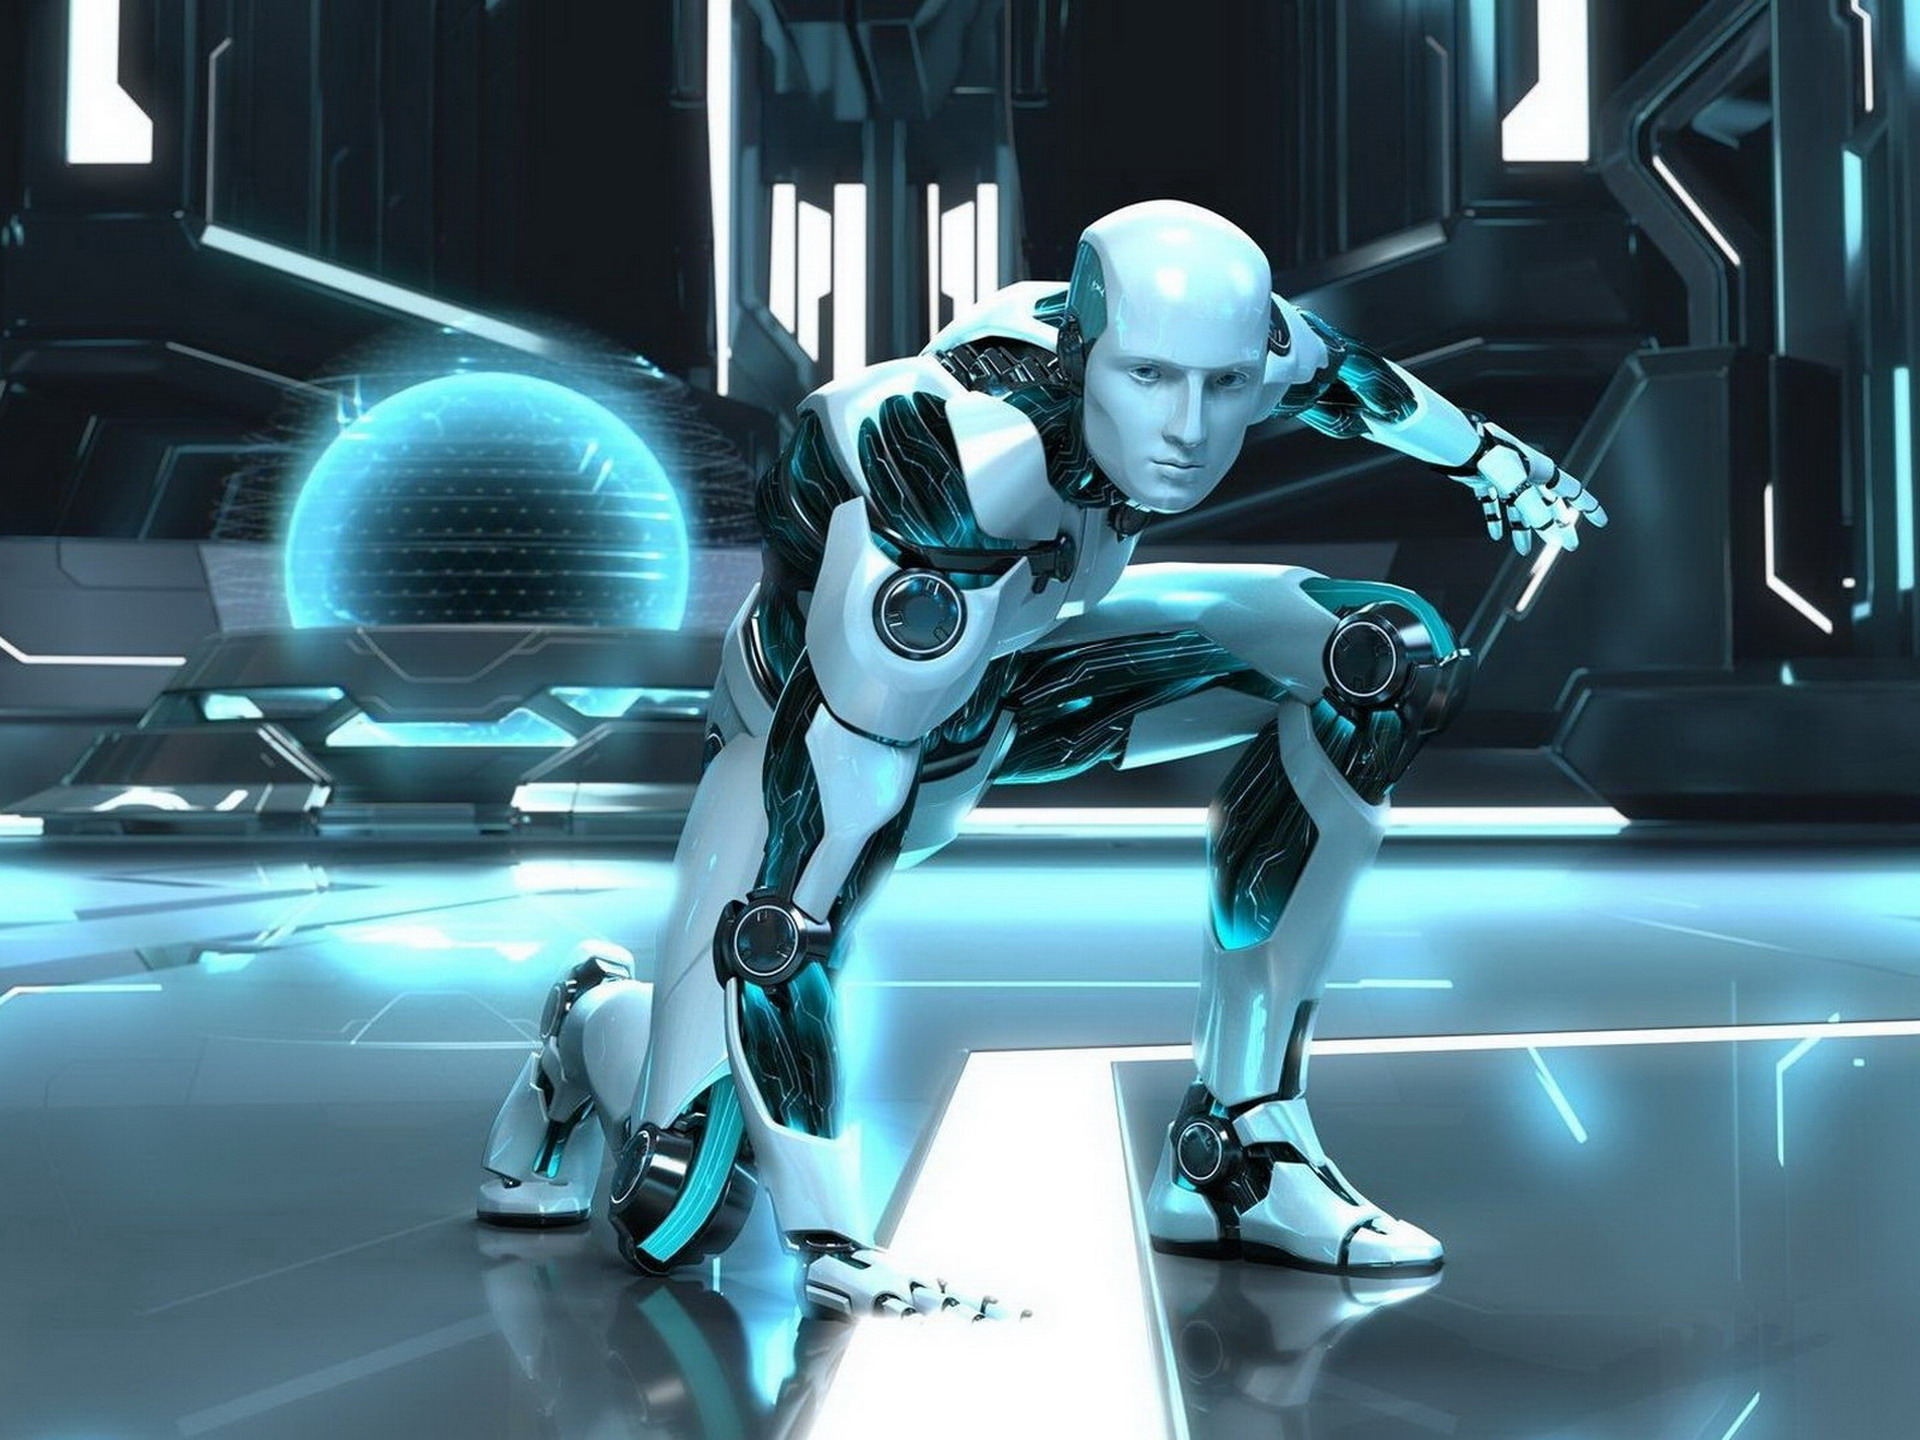 """""""Robot tax"""" would not protect jobs, says Institute of Economic Affairs"""